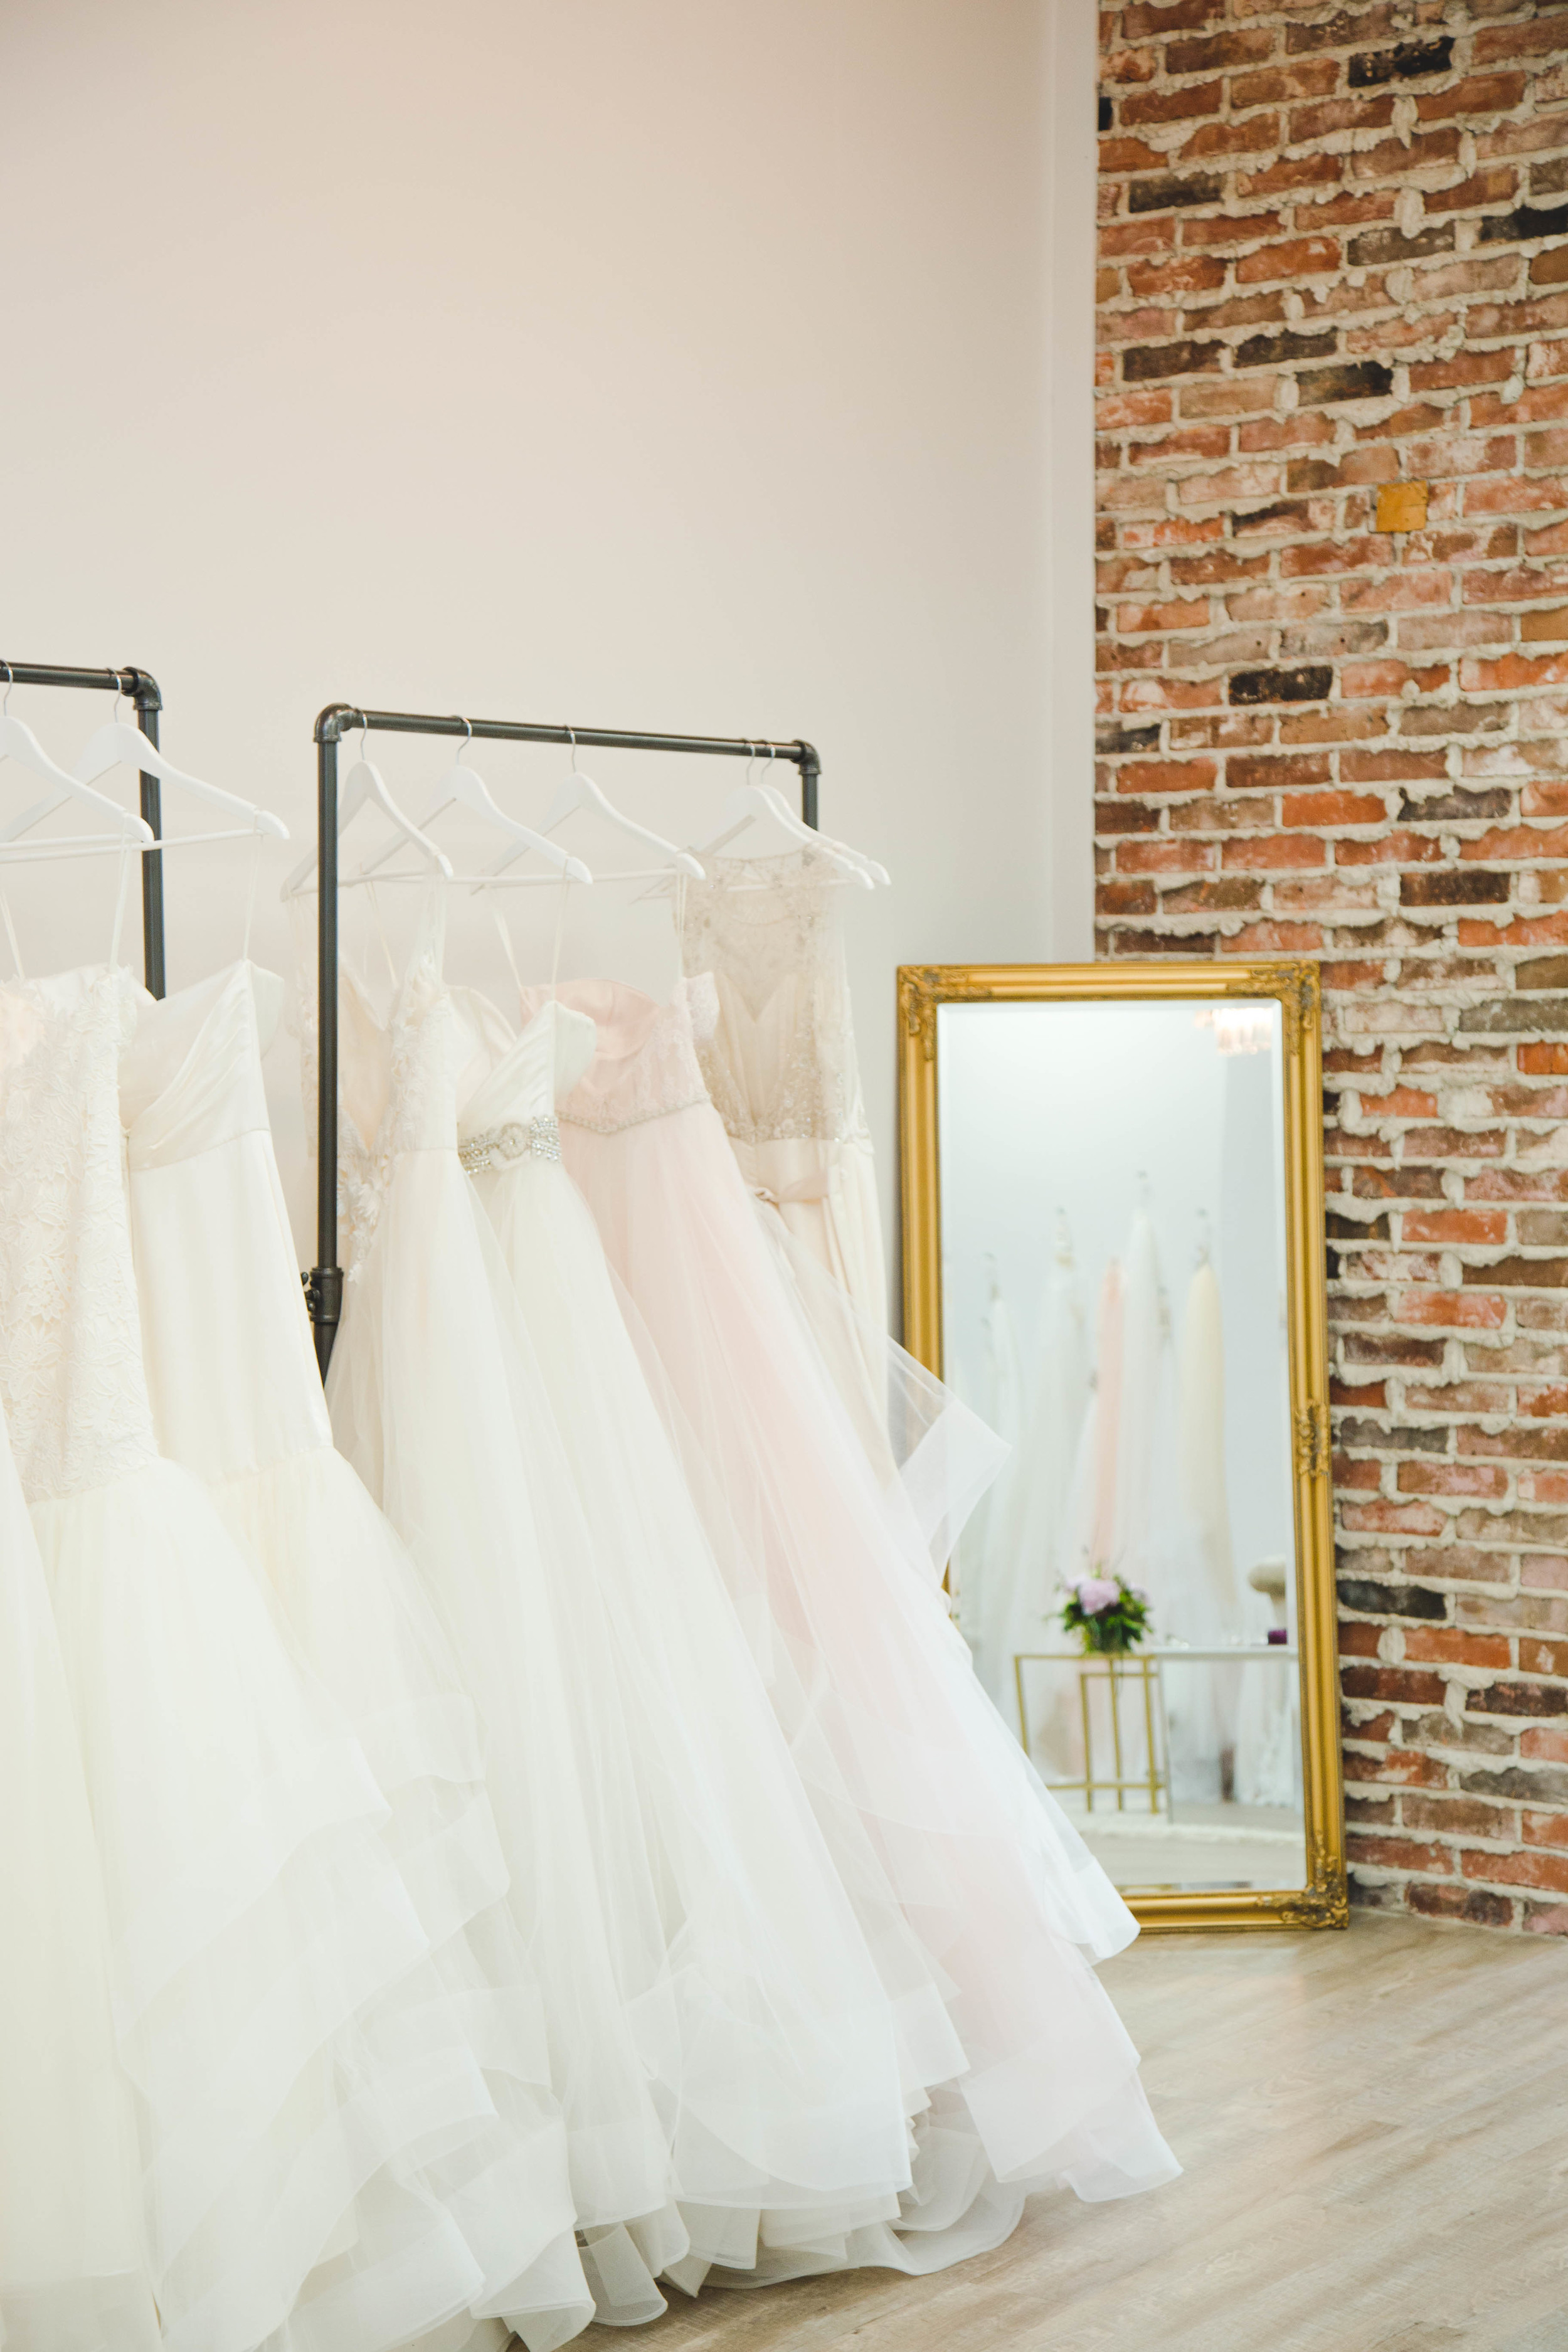 Lethbridge Bridal Gowns Lethbridge Alberta Bridal BoutiqueLethbridge Wedding Dresses